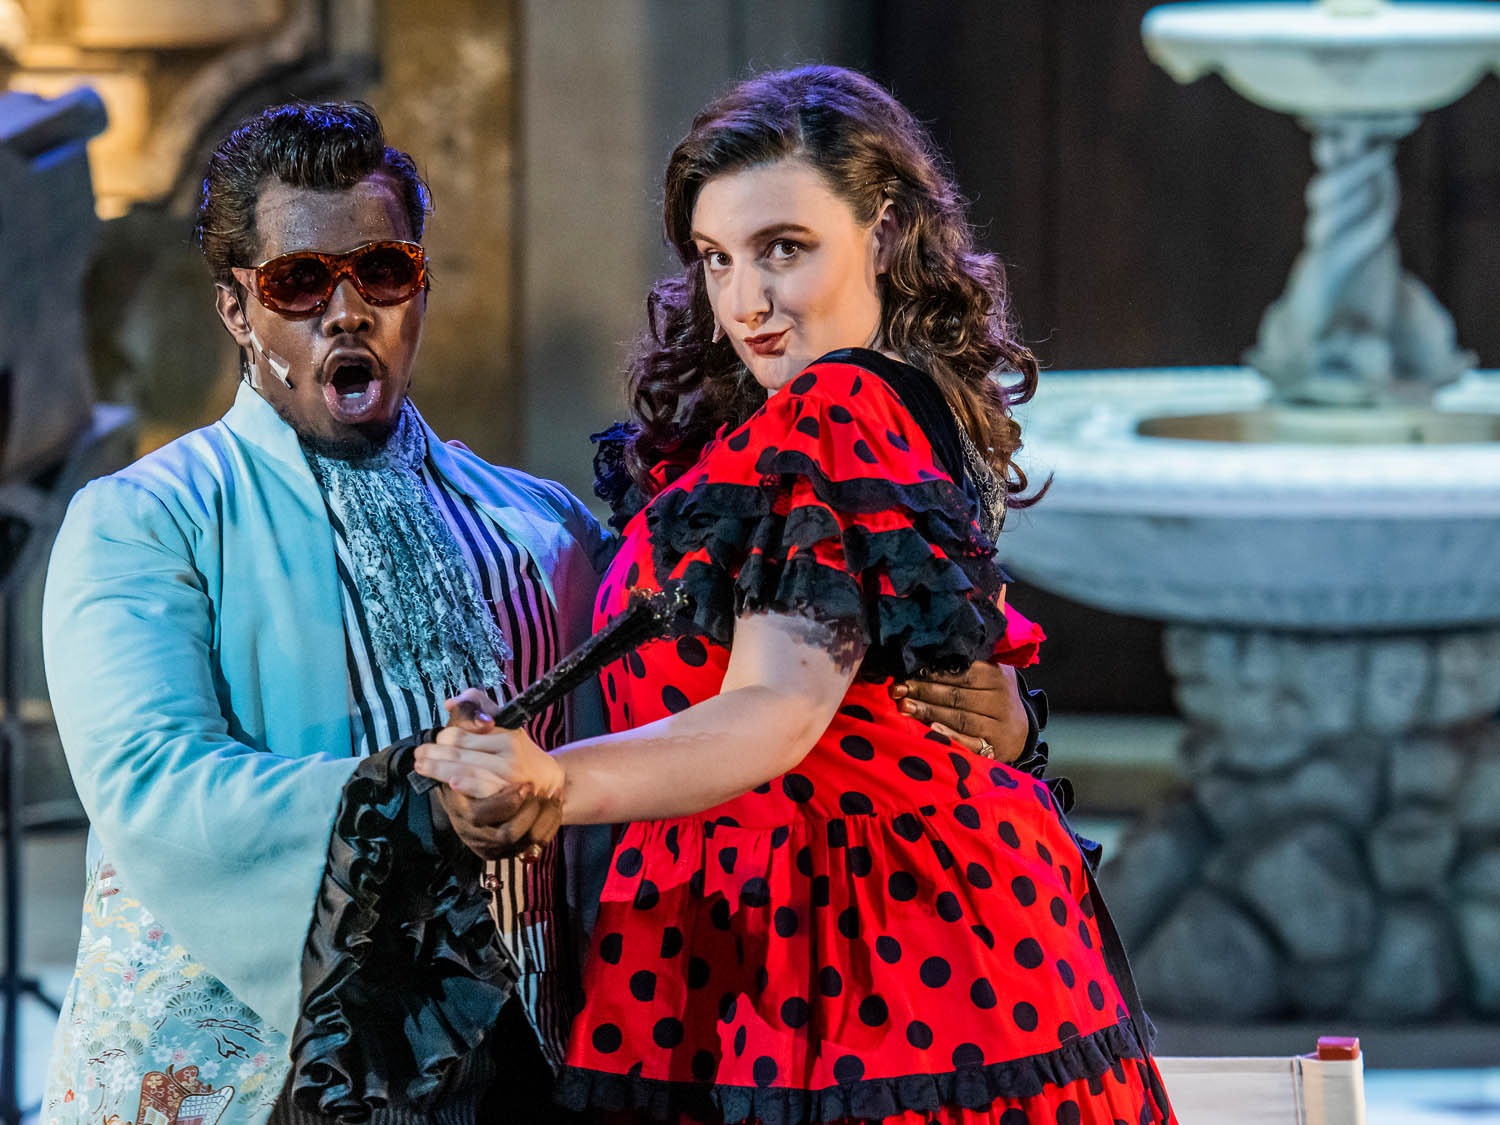 Scene from Le Nozze di Figaro at The New Generation Festival, Florence, 2019 (copyright Guy Bell)